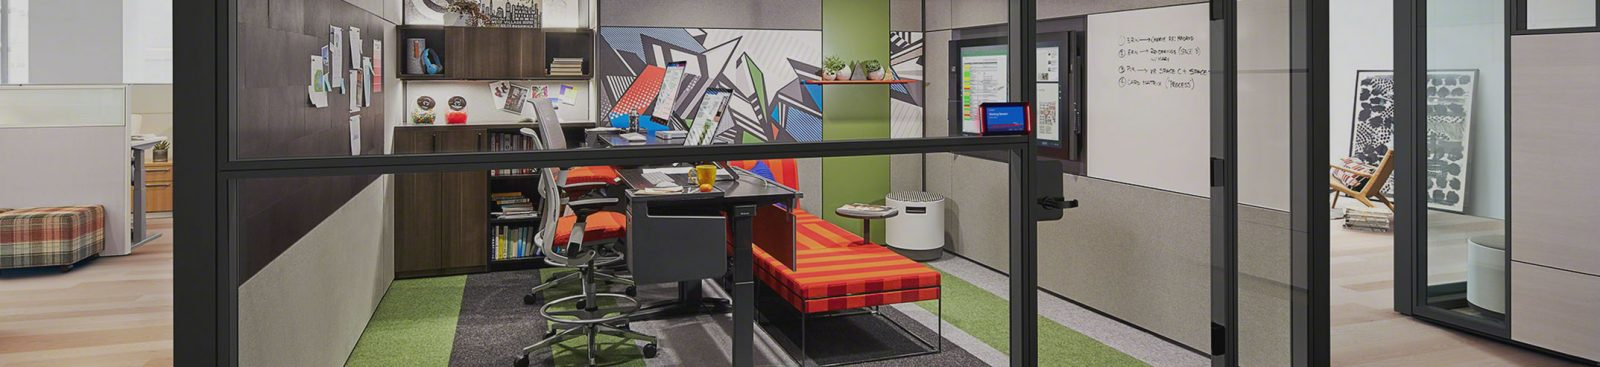 Why design a collaborative workspace for employees? image